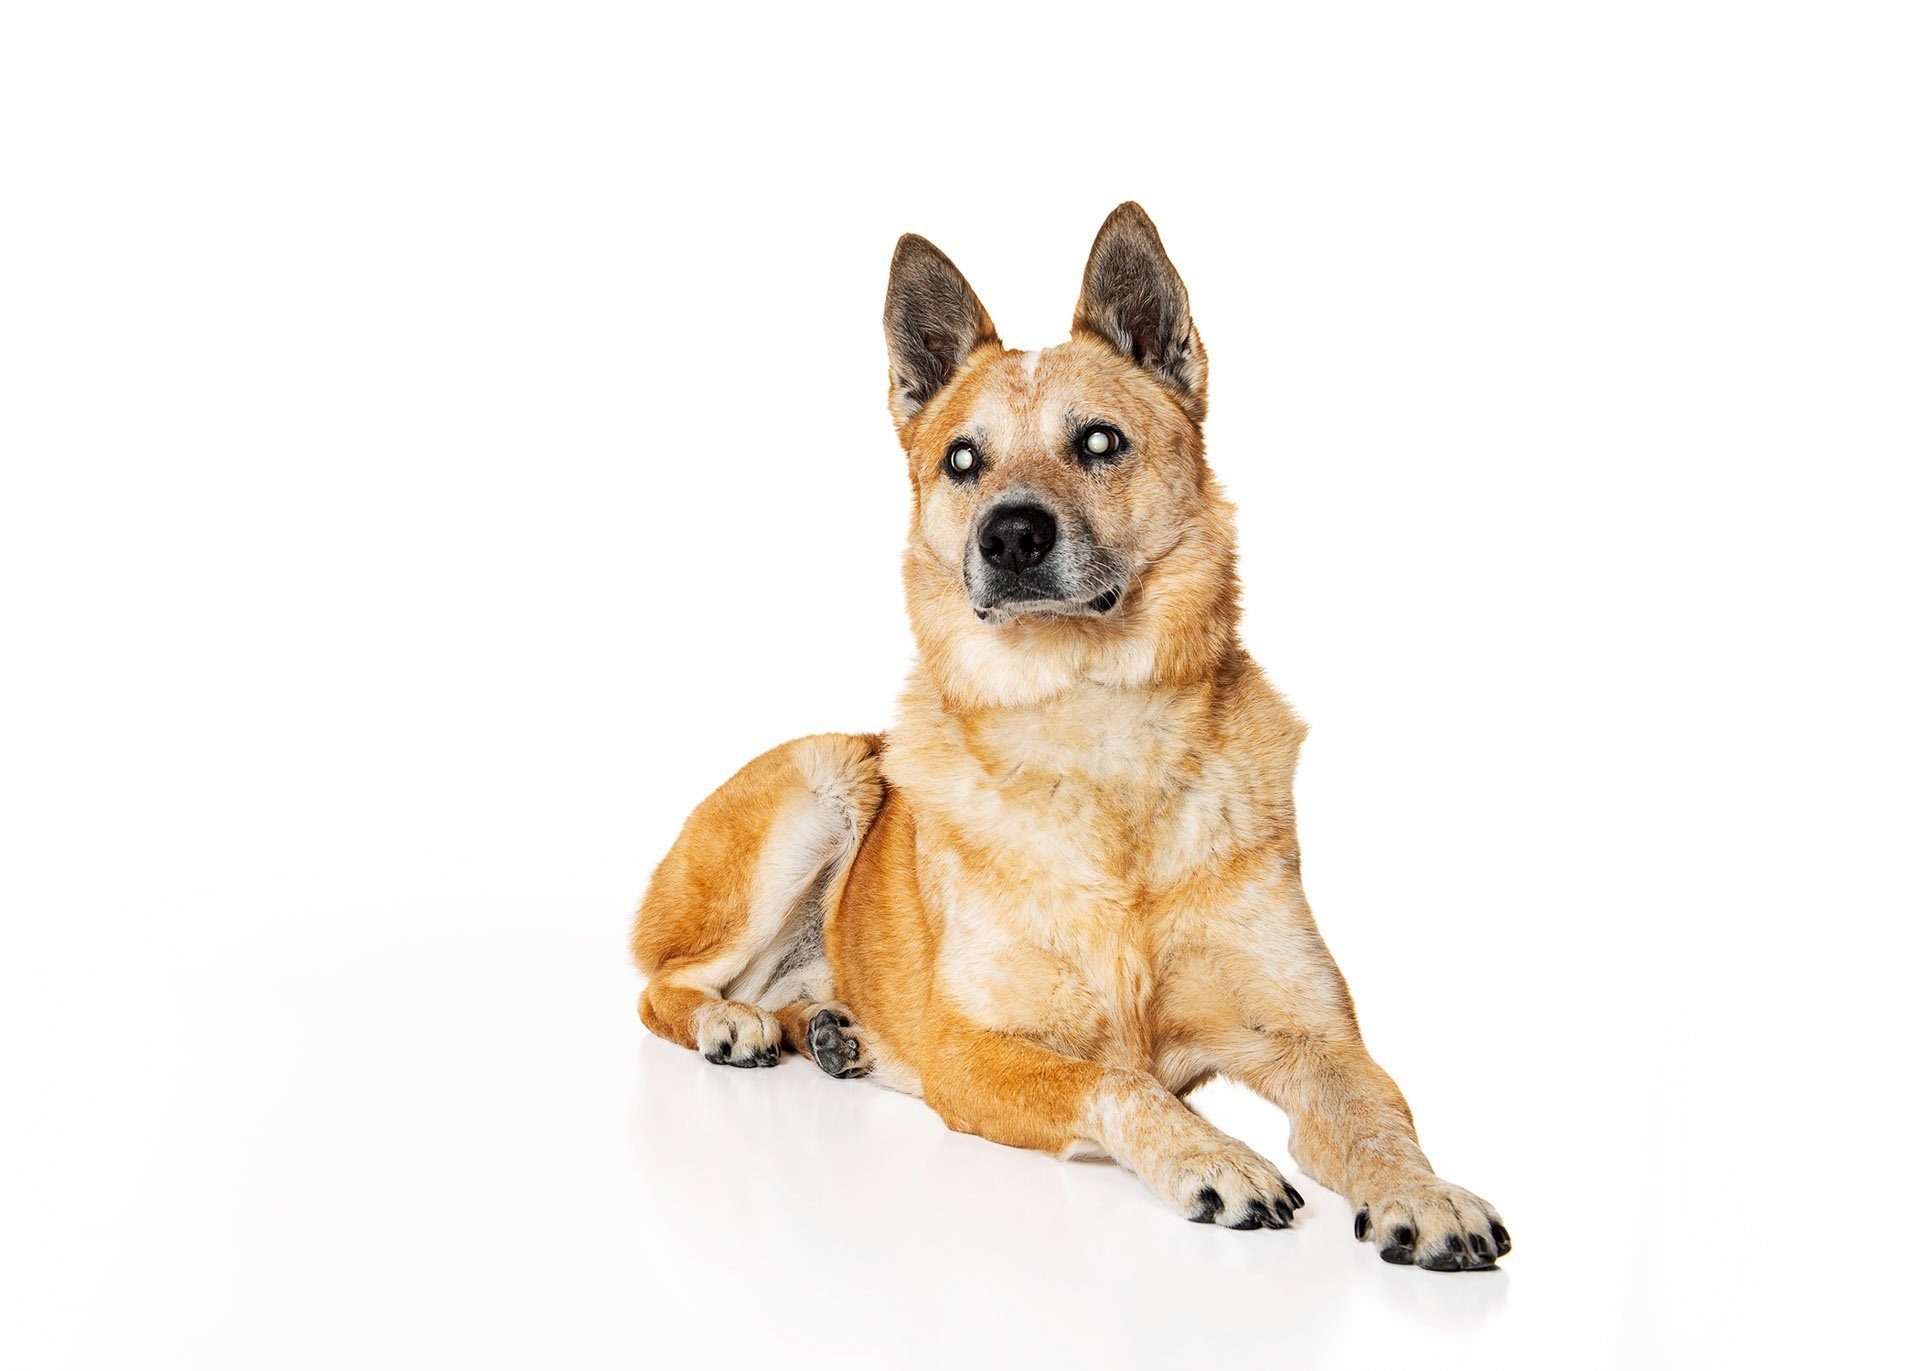 dog-australian-cattle-dog-therapy-animal-blind